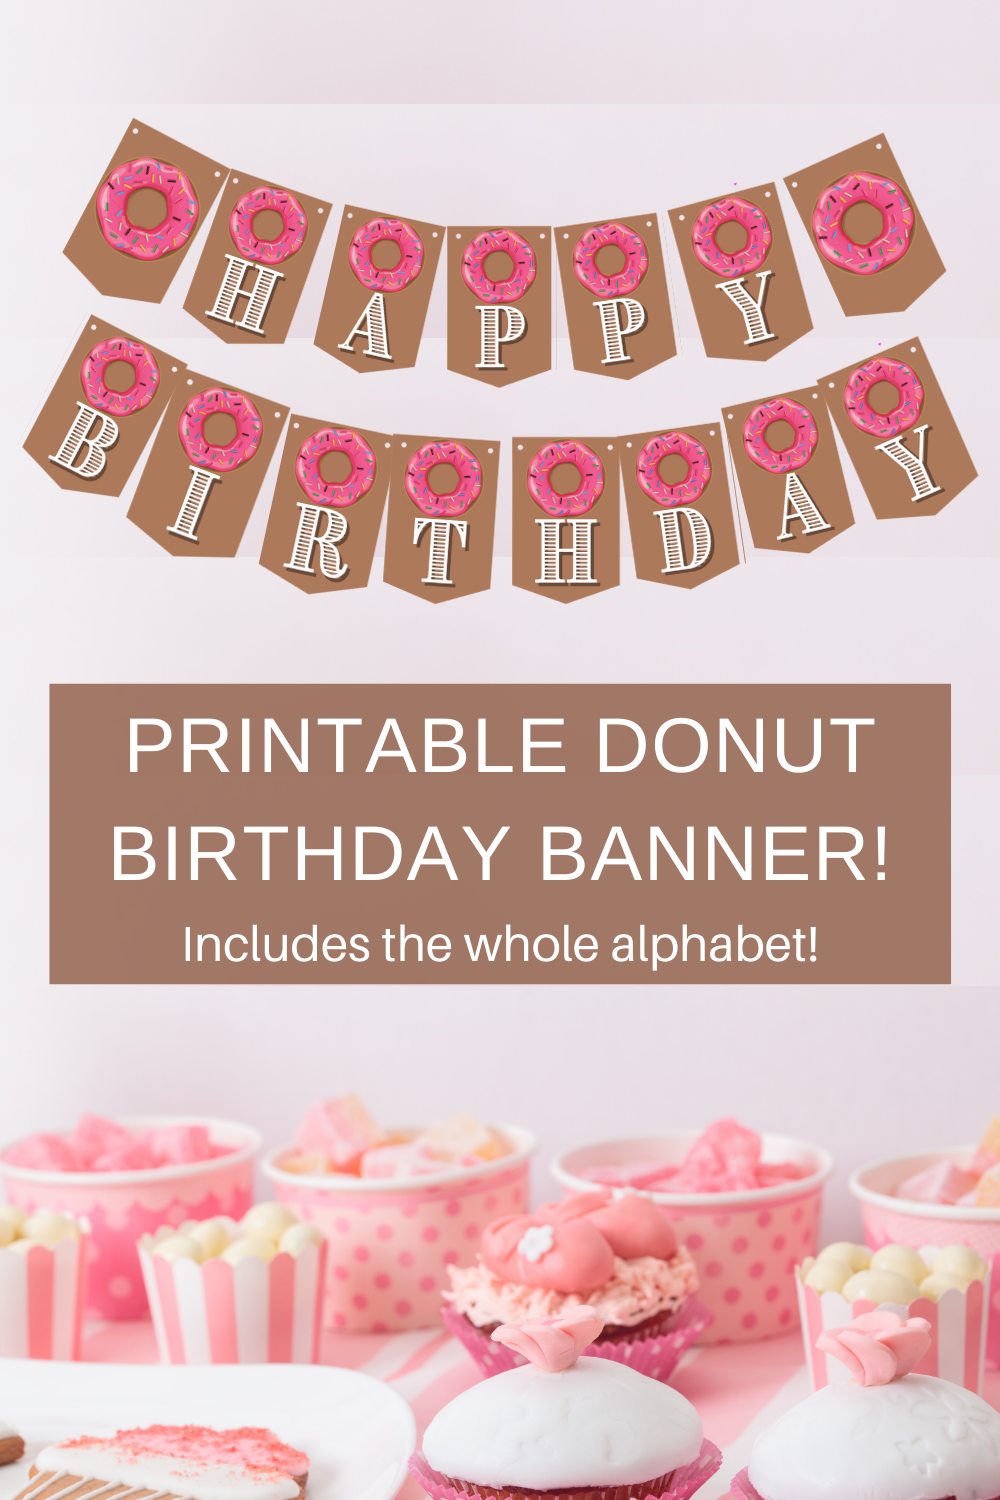 little girl's birthday party decorations for a donut birthday